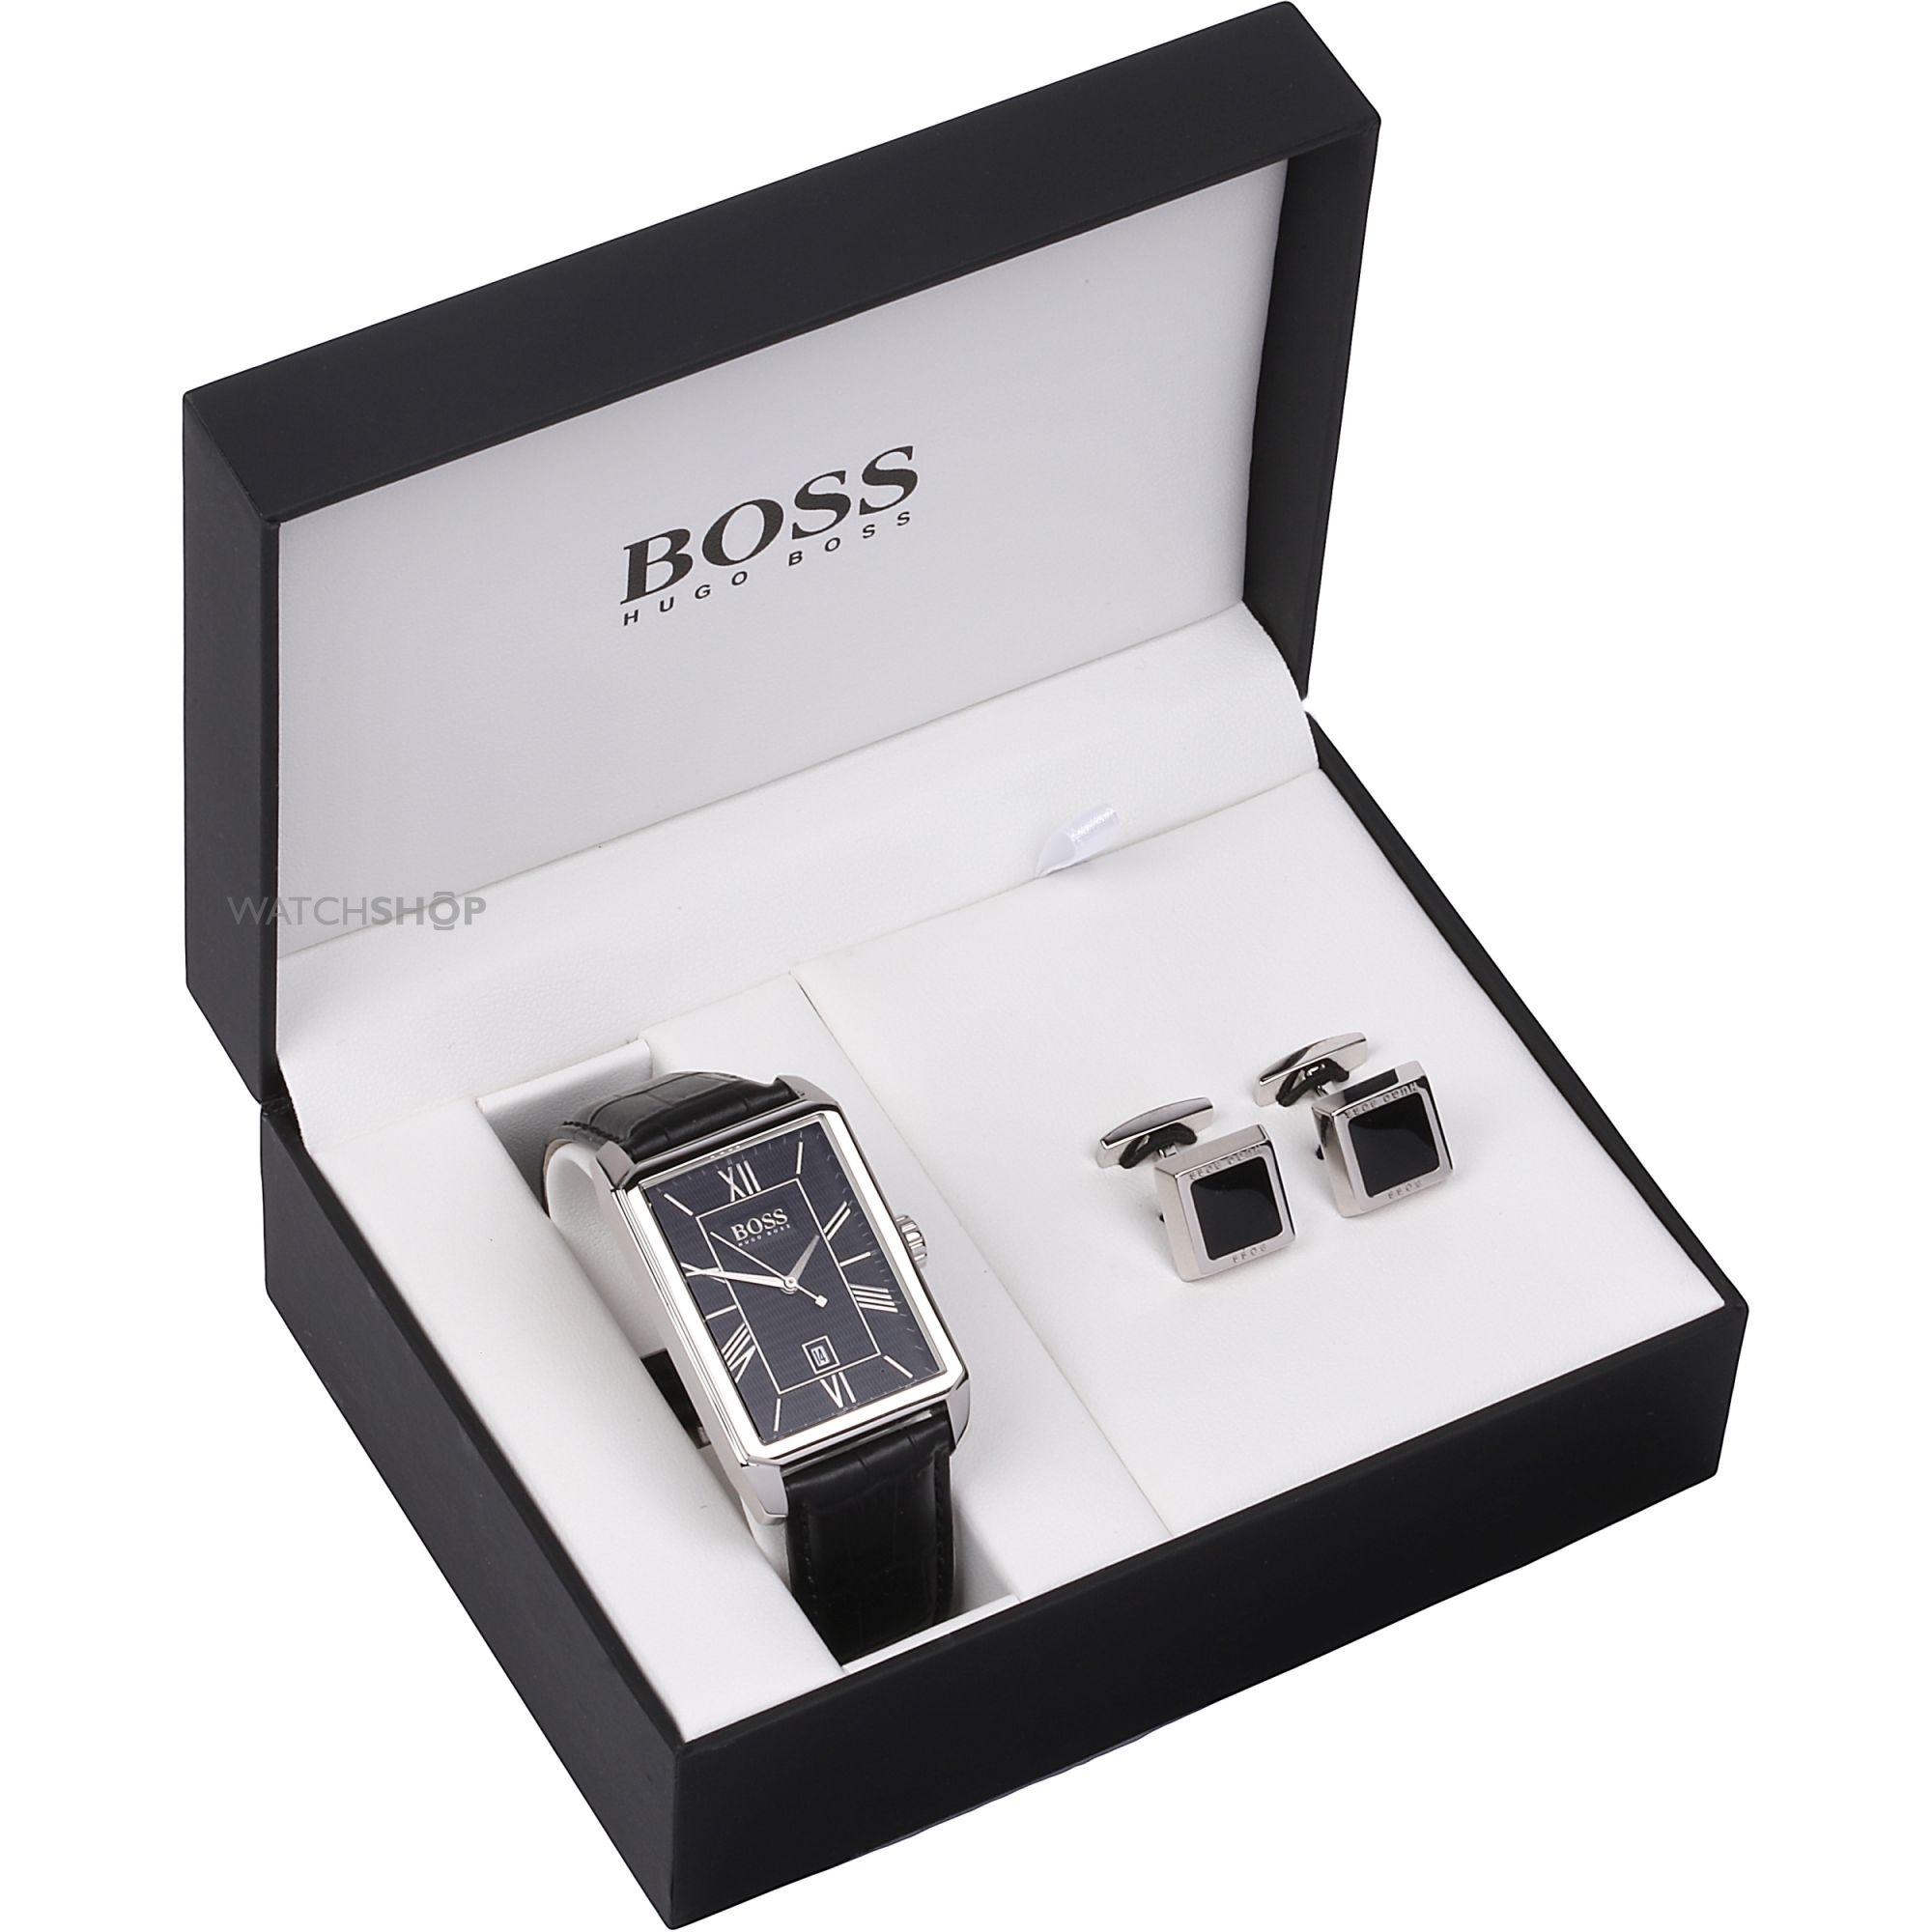 Men 39 s hugo boss cufflink box set watch 1570025 watch for Men s jewelry box for watches and cufflinks